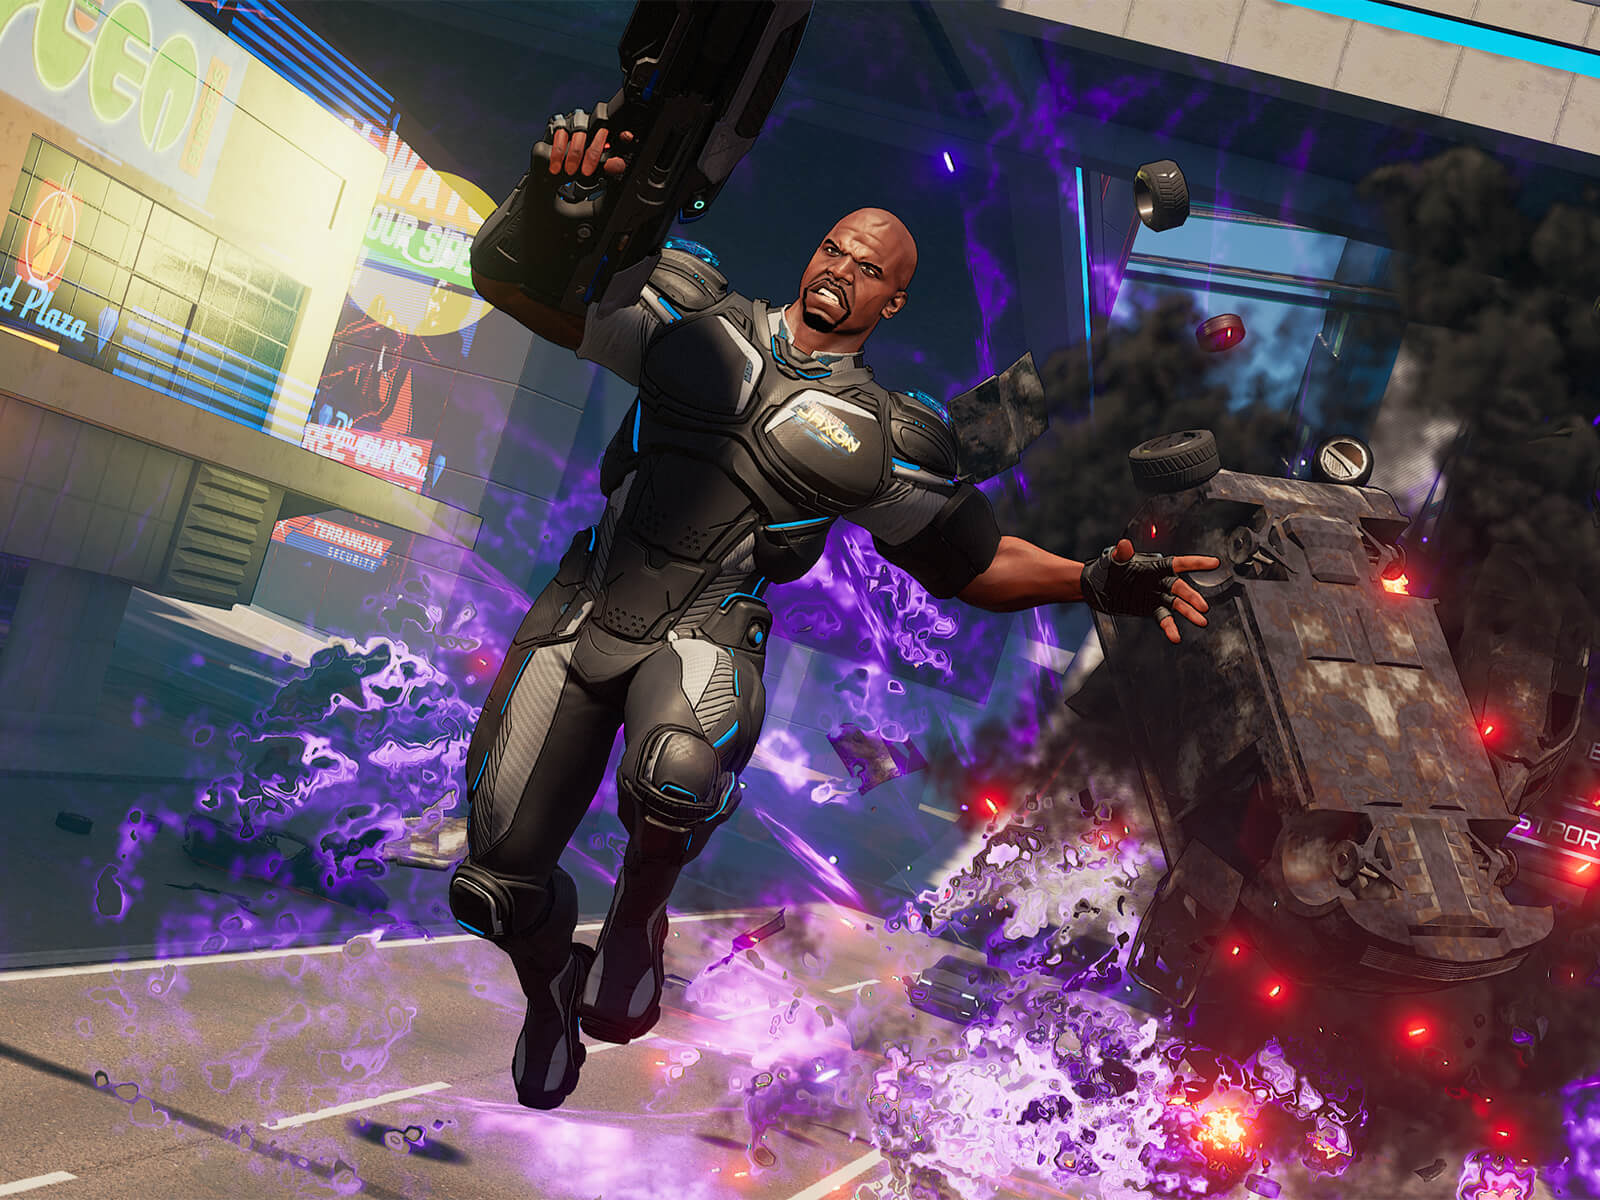 A man in a futuristic black jumpsuit leaps away from a purple-hued explosion of a truck overturning behind him on a road